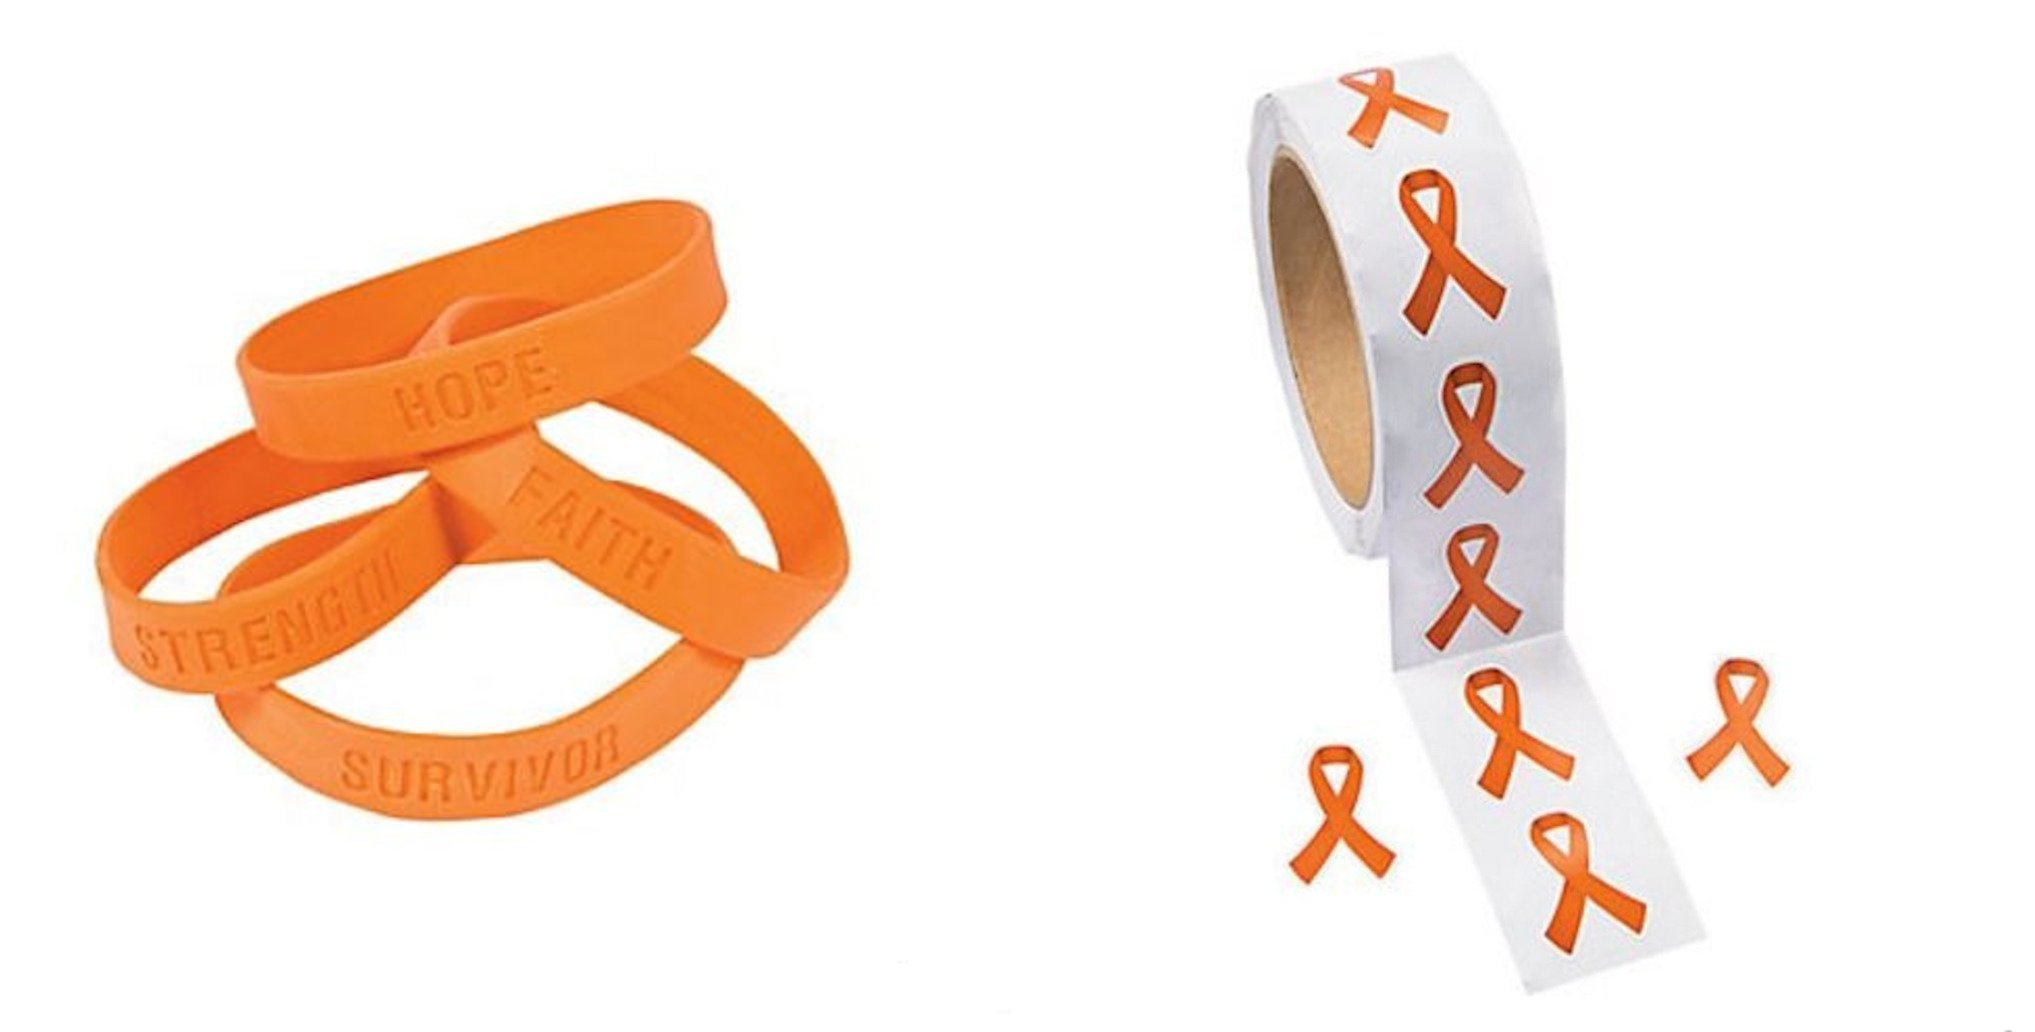 leukemia pin hunger orange ribbon bracelet treatment self humane awareness represents injury